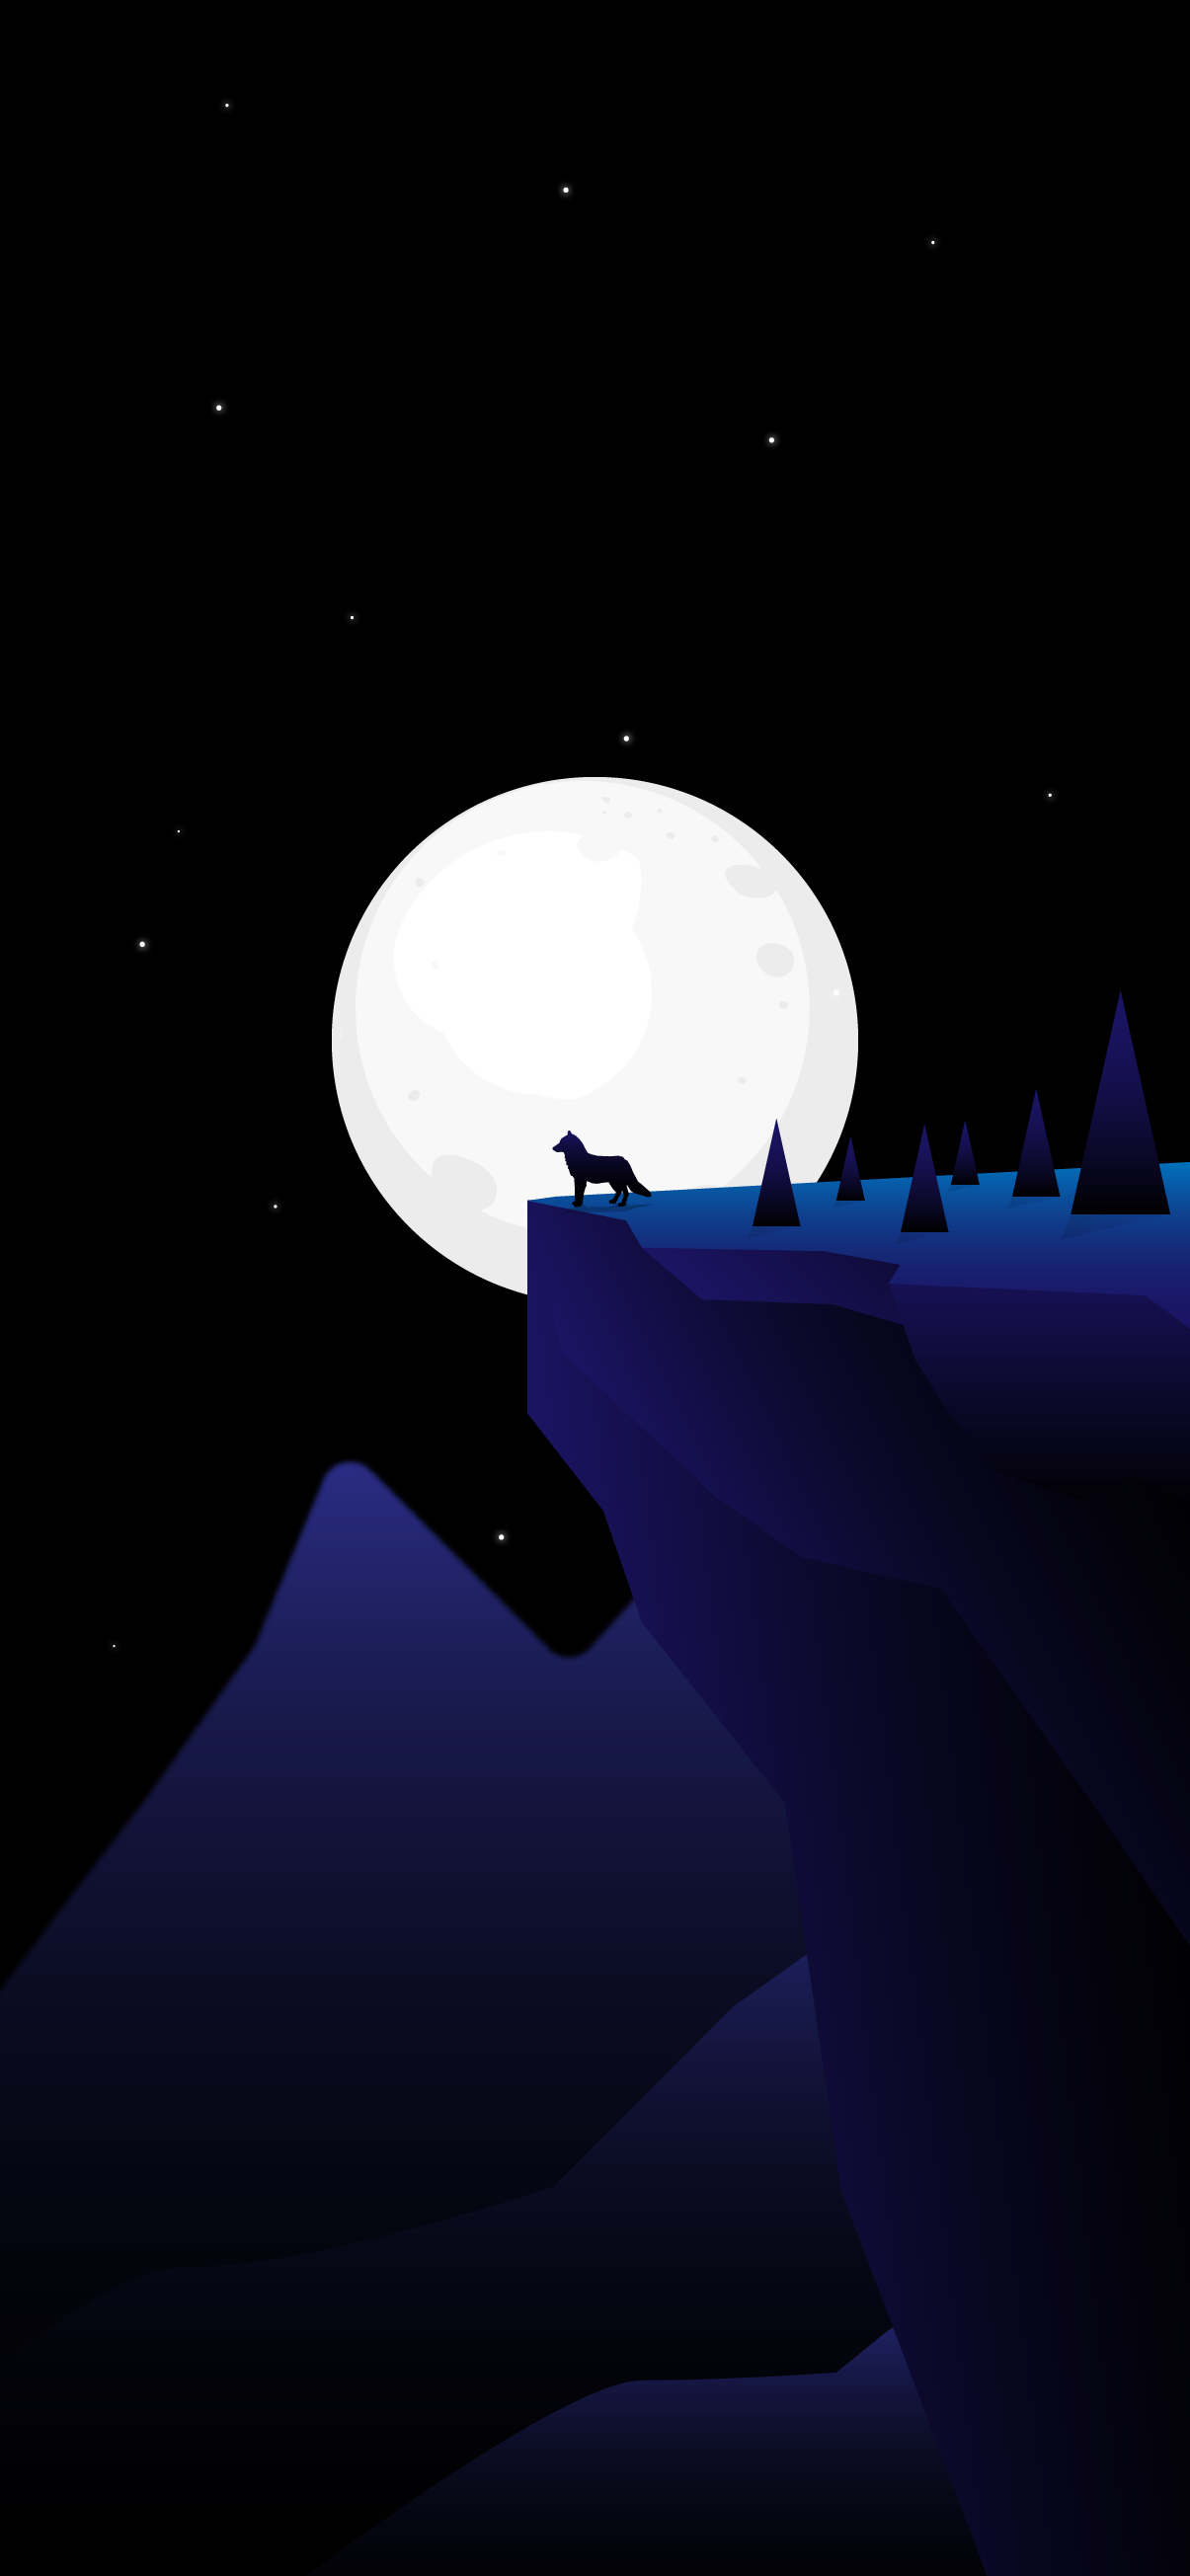 cool and beautiful wallpaper for iphone of a wolf in the moon night